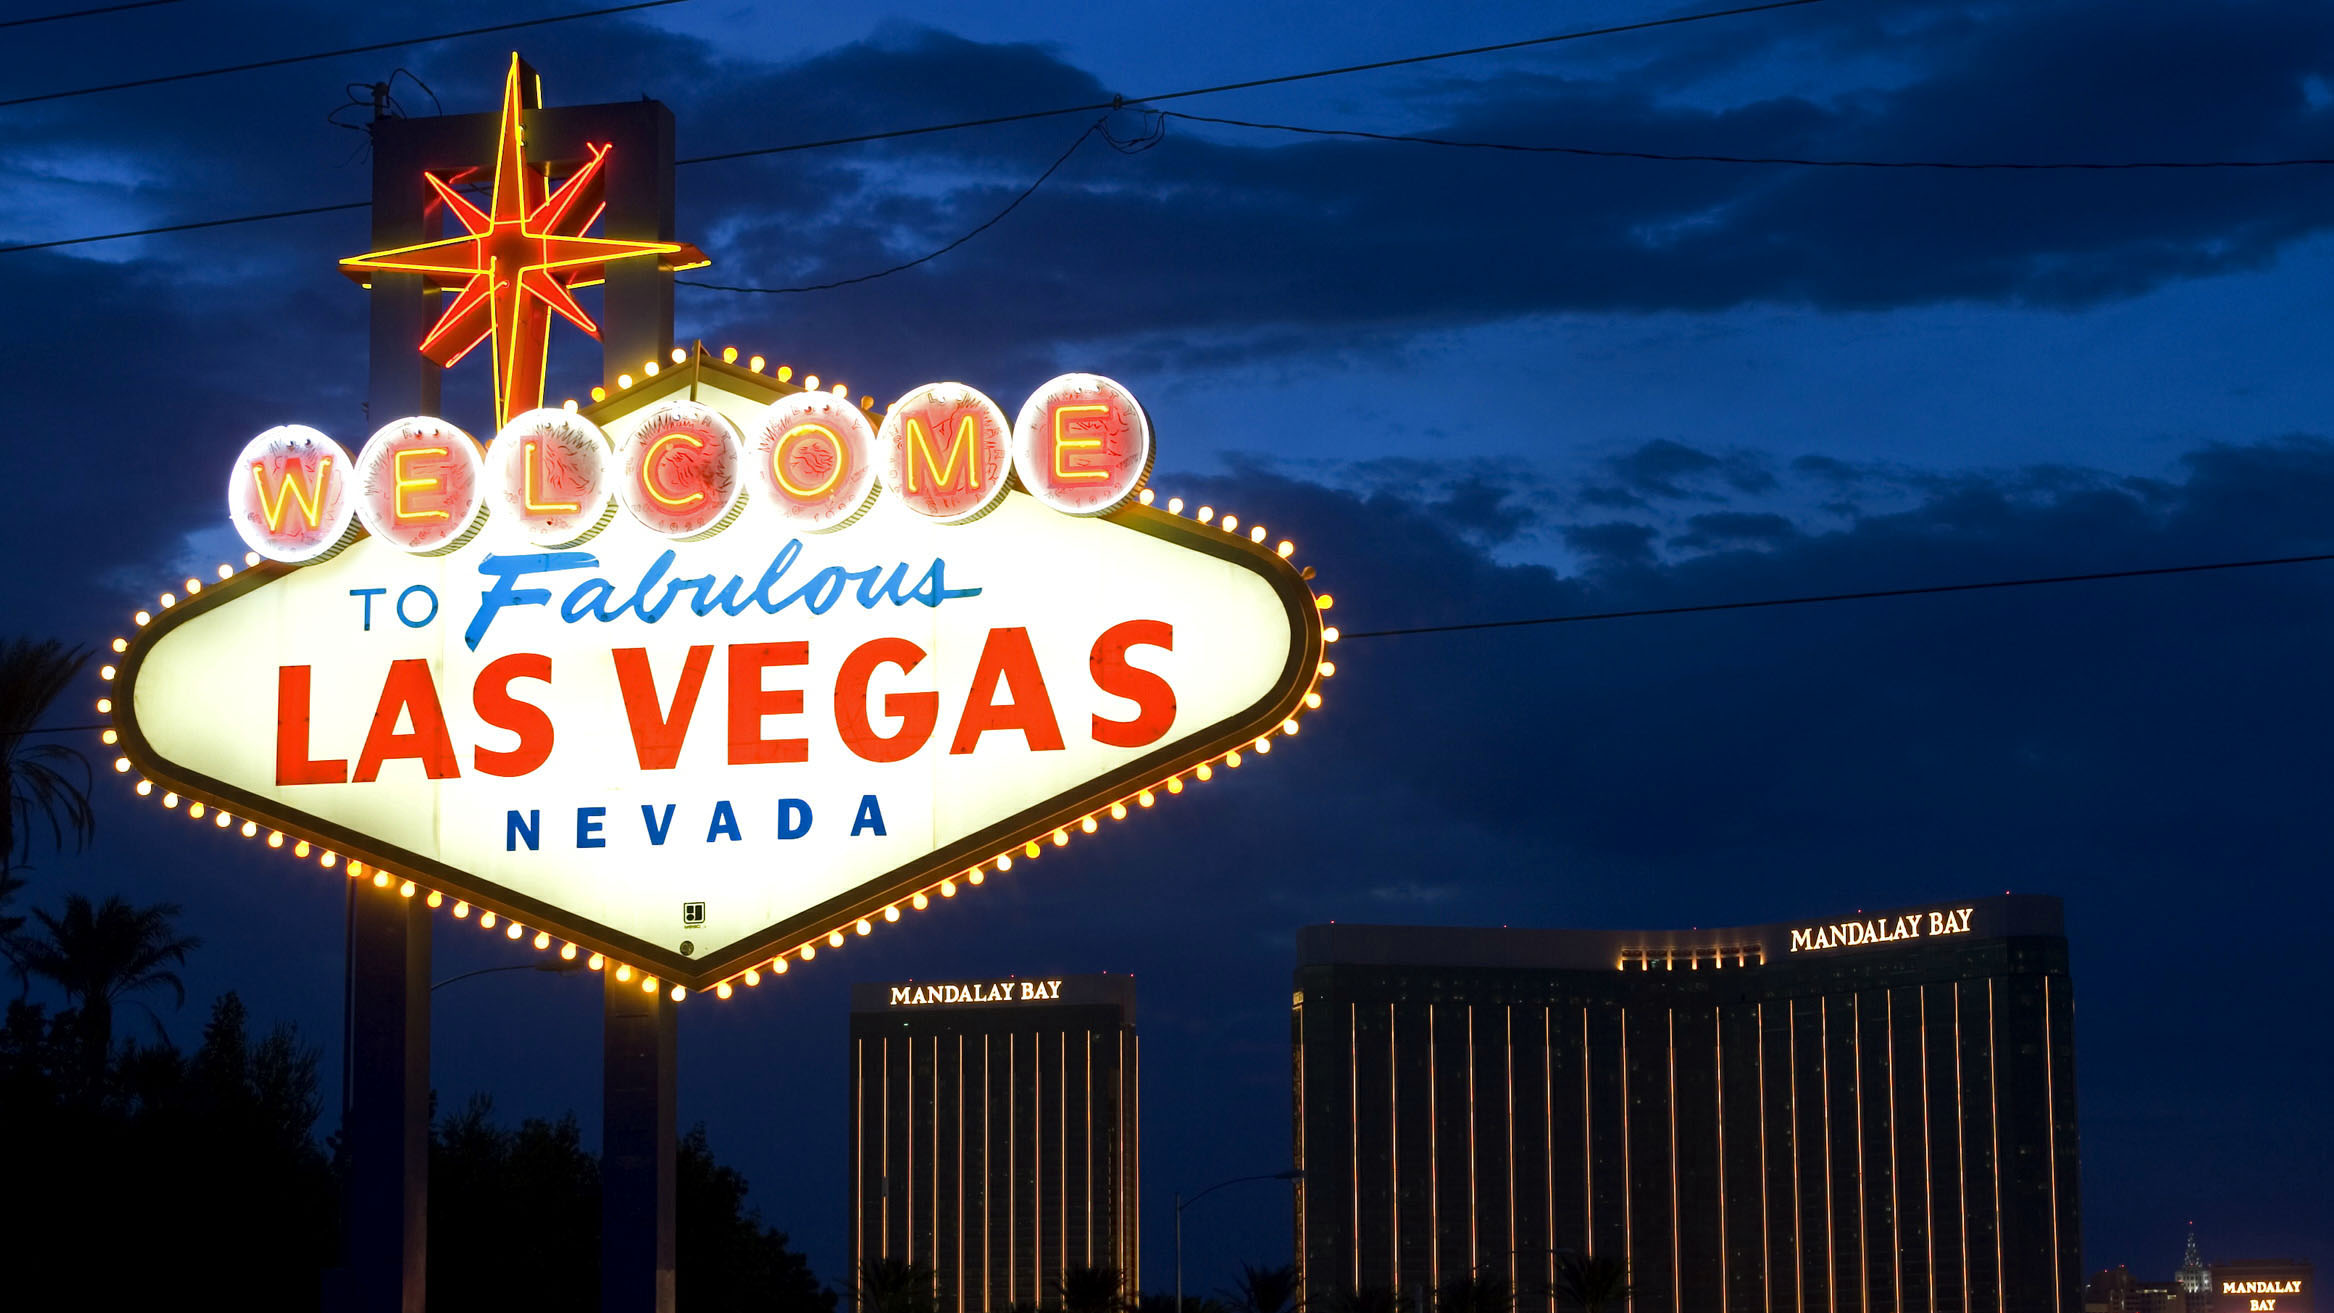 Las vegas economy casino best time to play slots in a casino